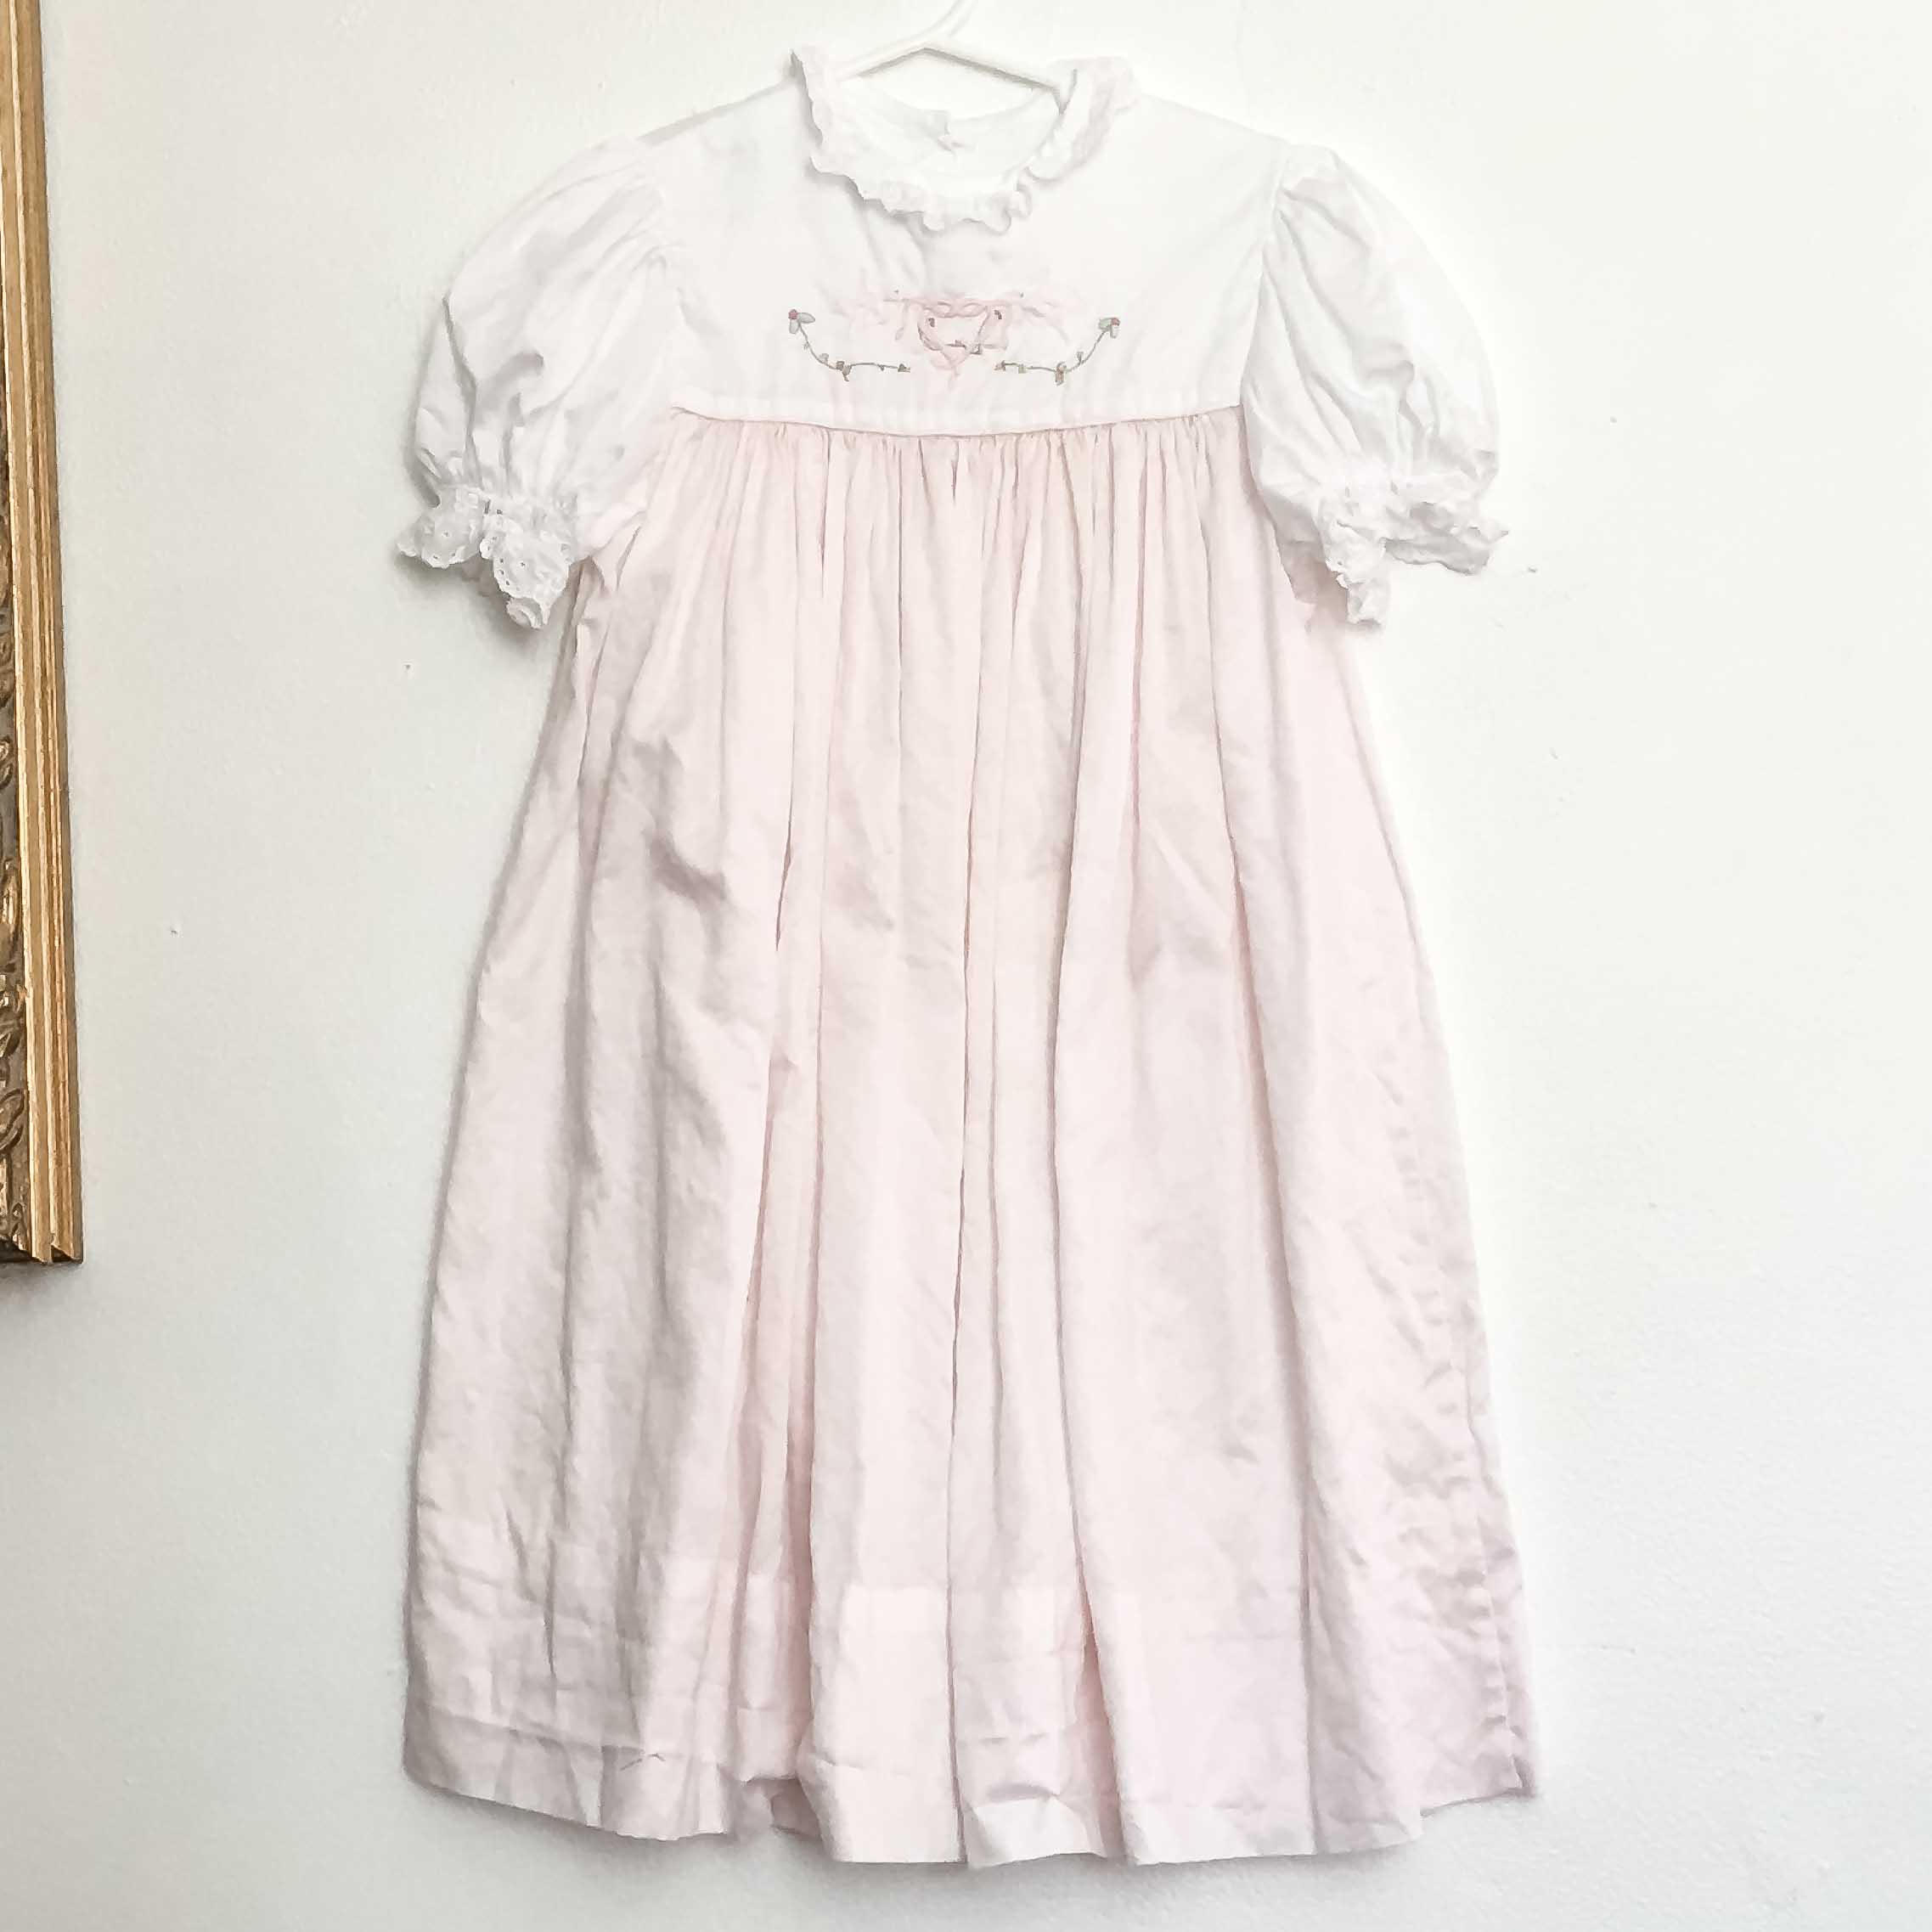 ORPCLOTHES-38.jpg